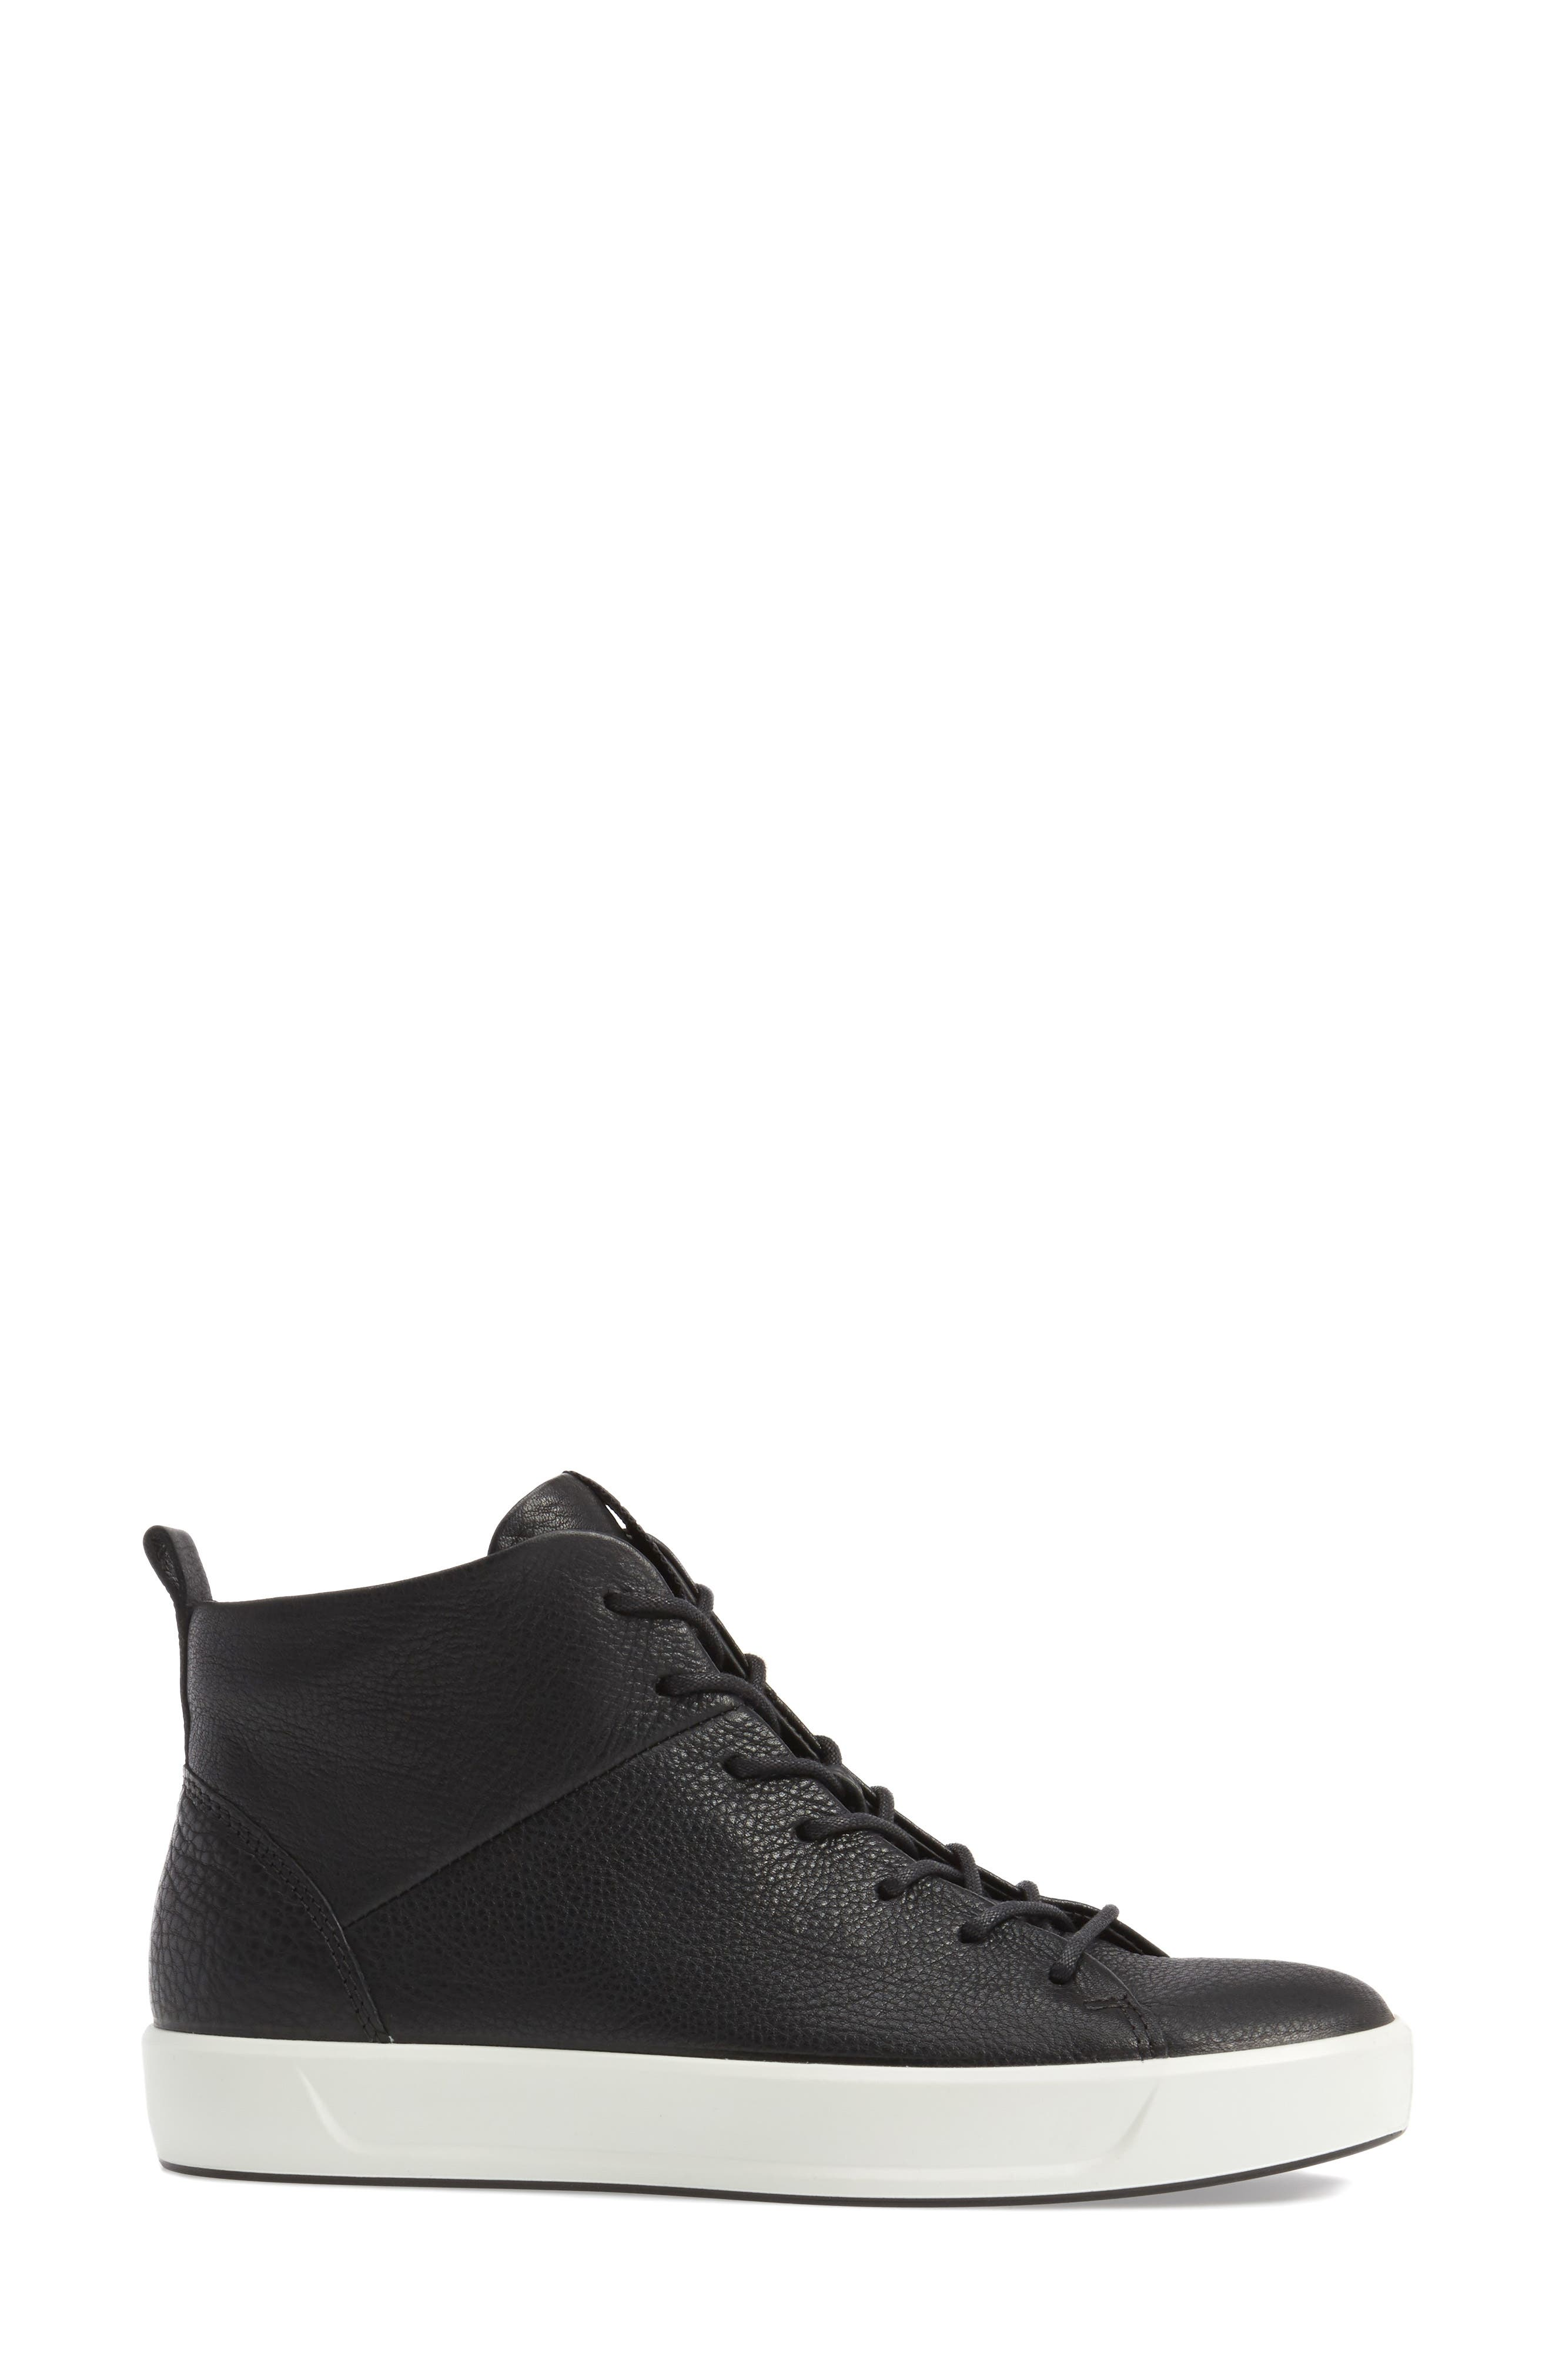 Soft 8 High Top Sneaker,                             Alternate thumbnail 3, color,                             Black Leather